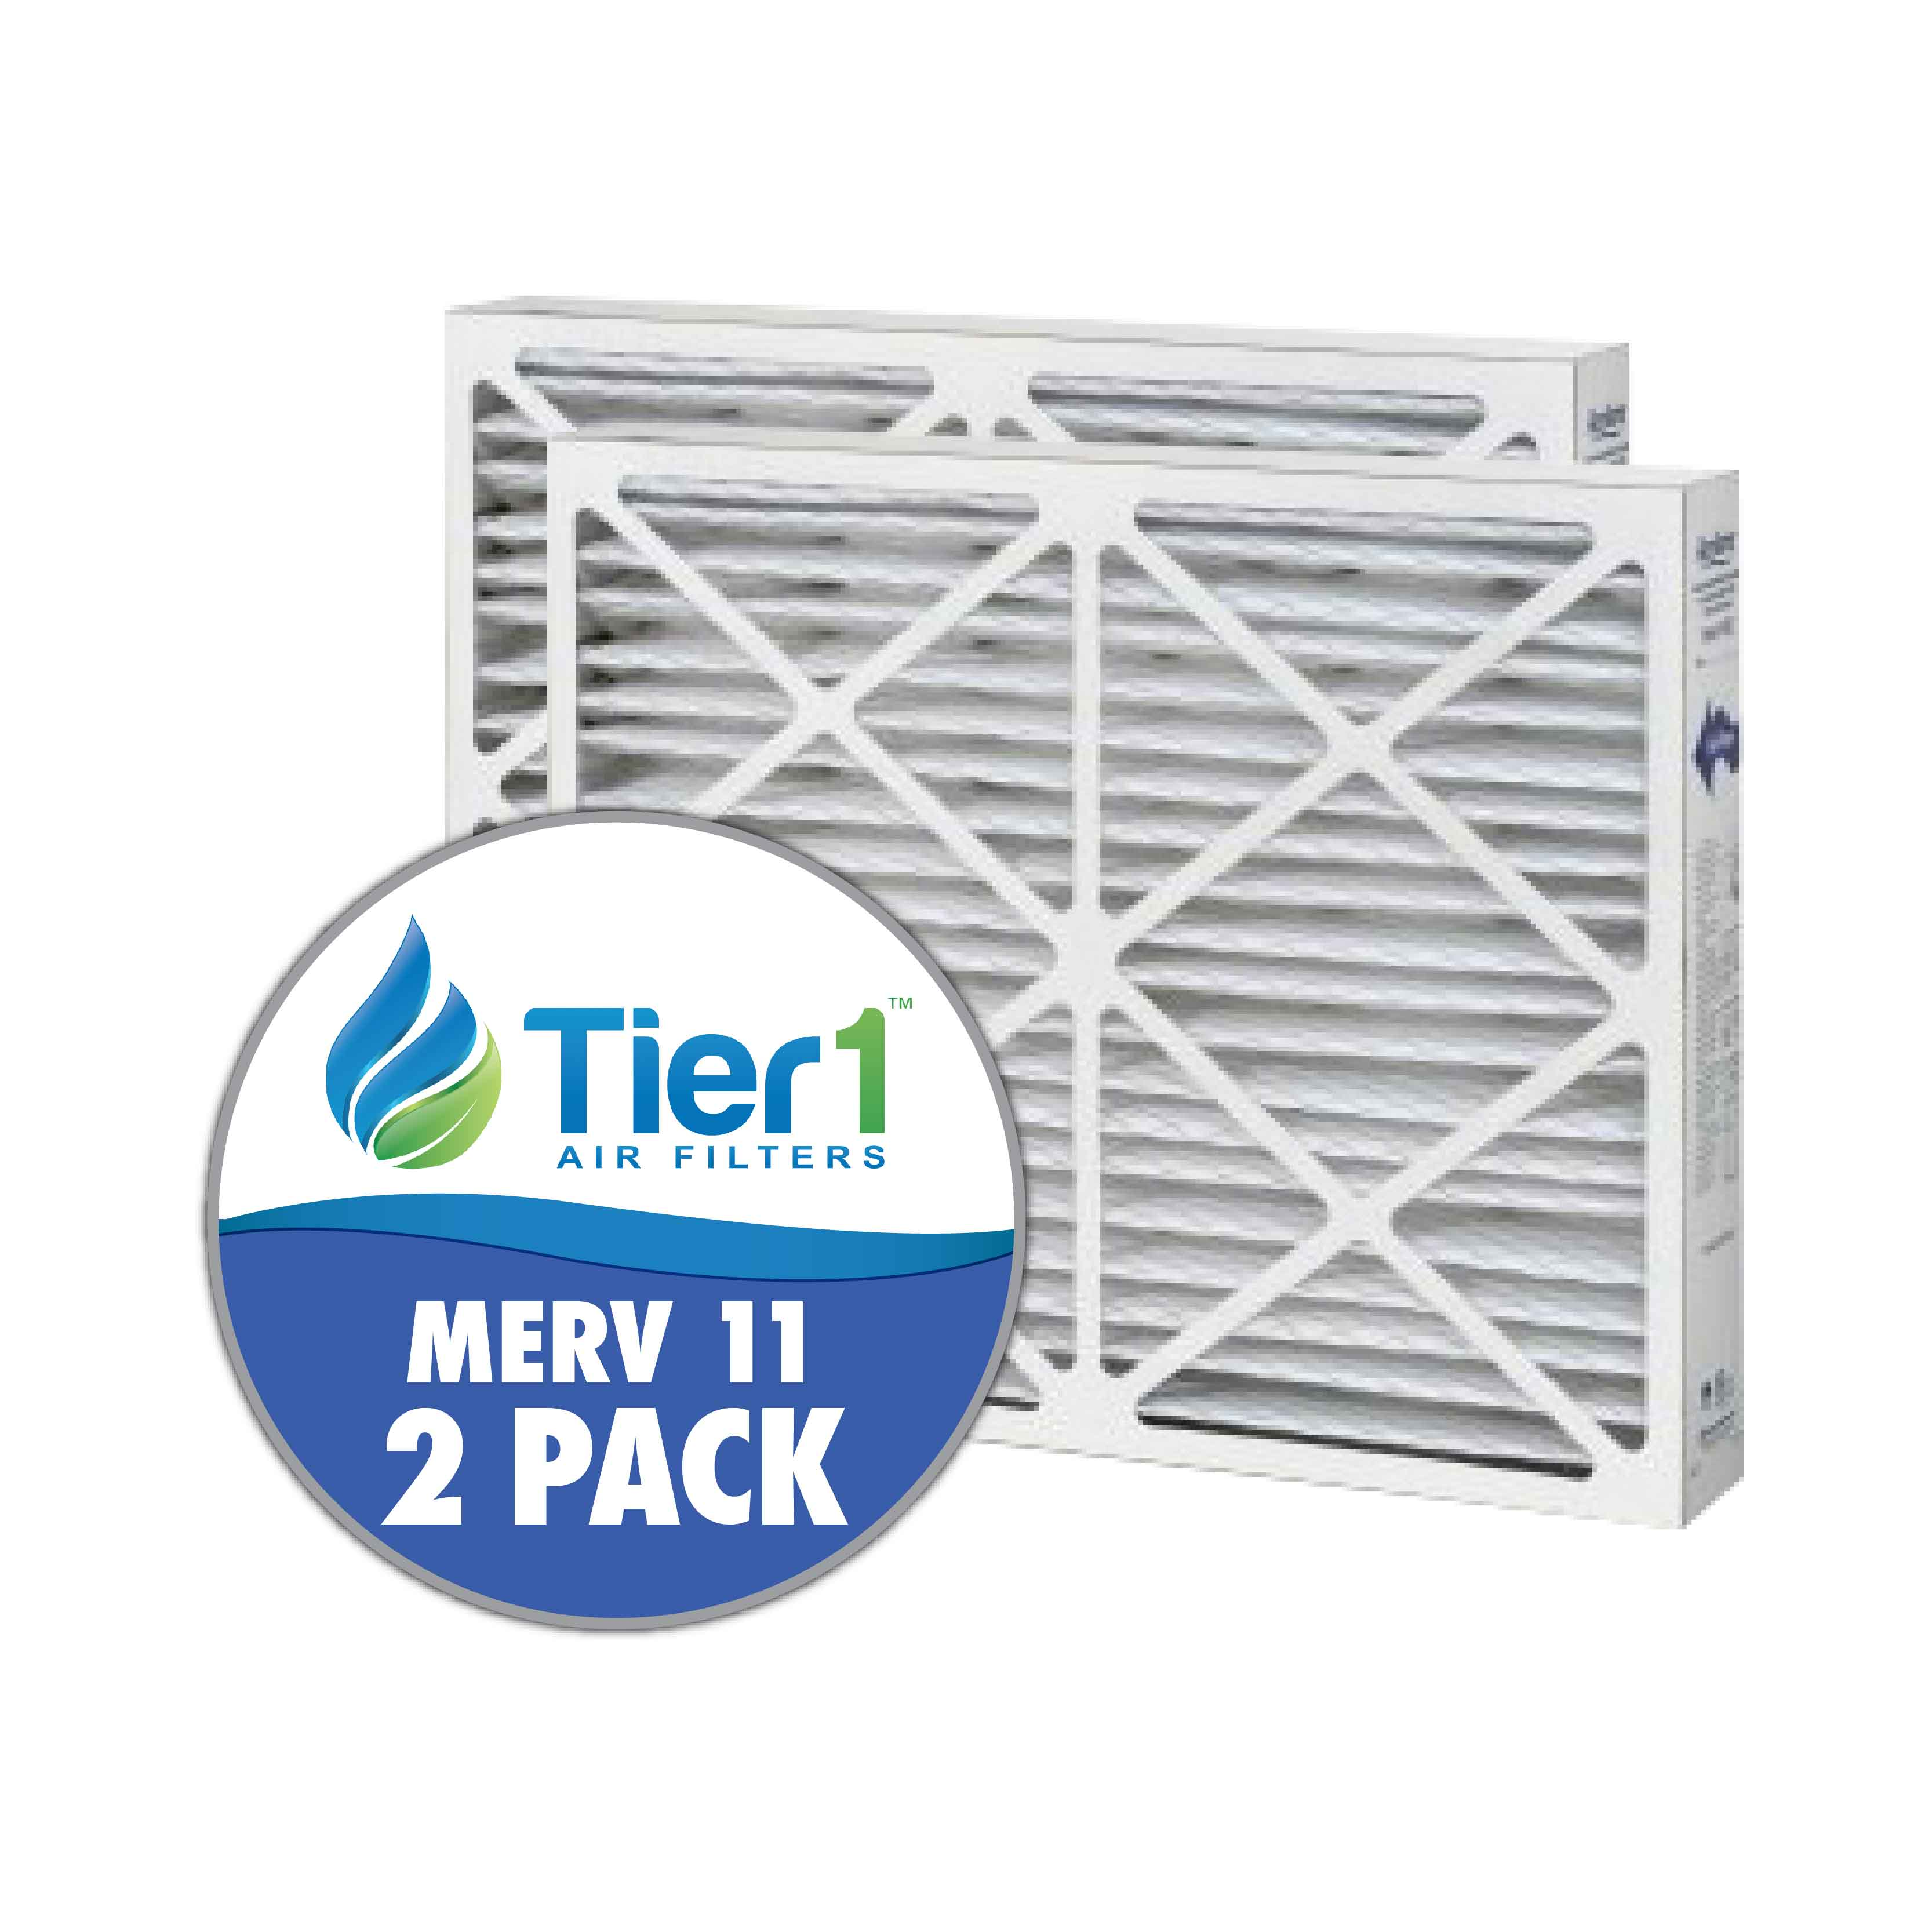 Tier1 brand replacement for Lennox X0445 - 20 x 25 x 6 - MERV 11 (2-Pack) TIER1-DPFS20X25X6M11DLX